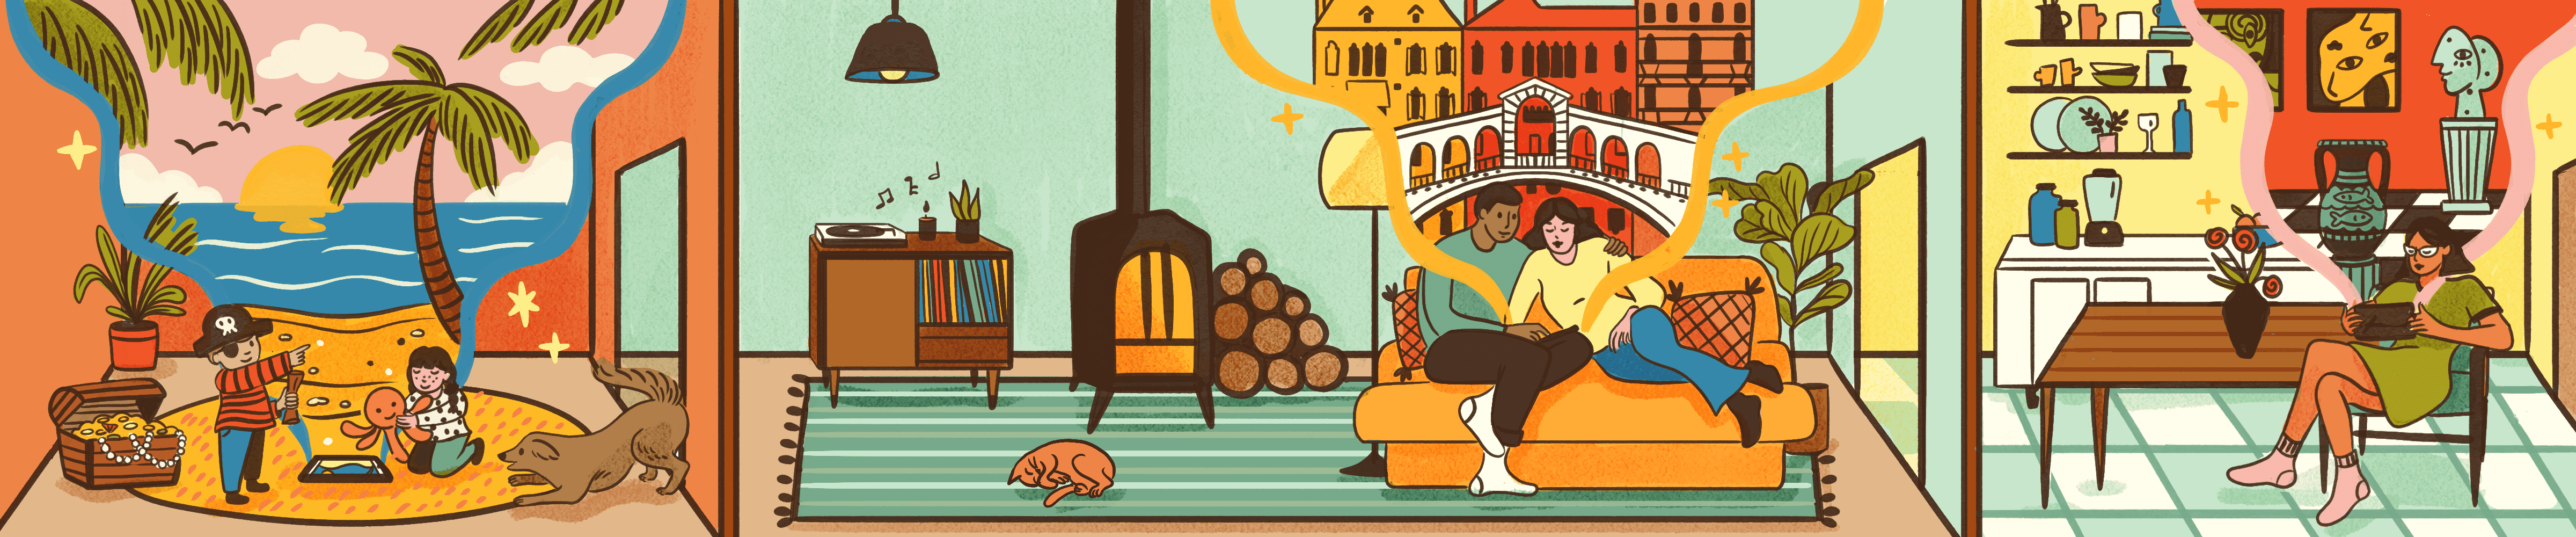 Illustration of people in their homes looking at virtual tourist attractions